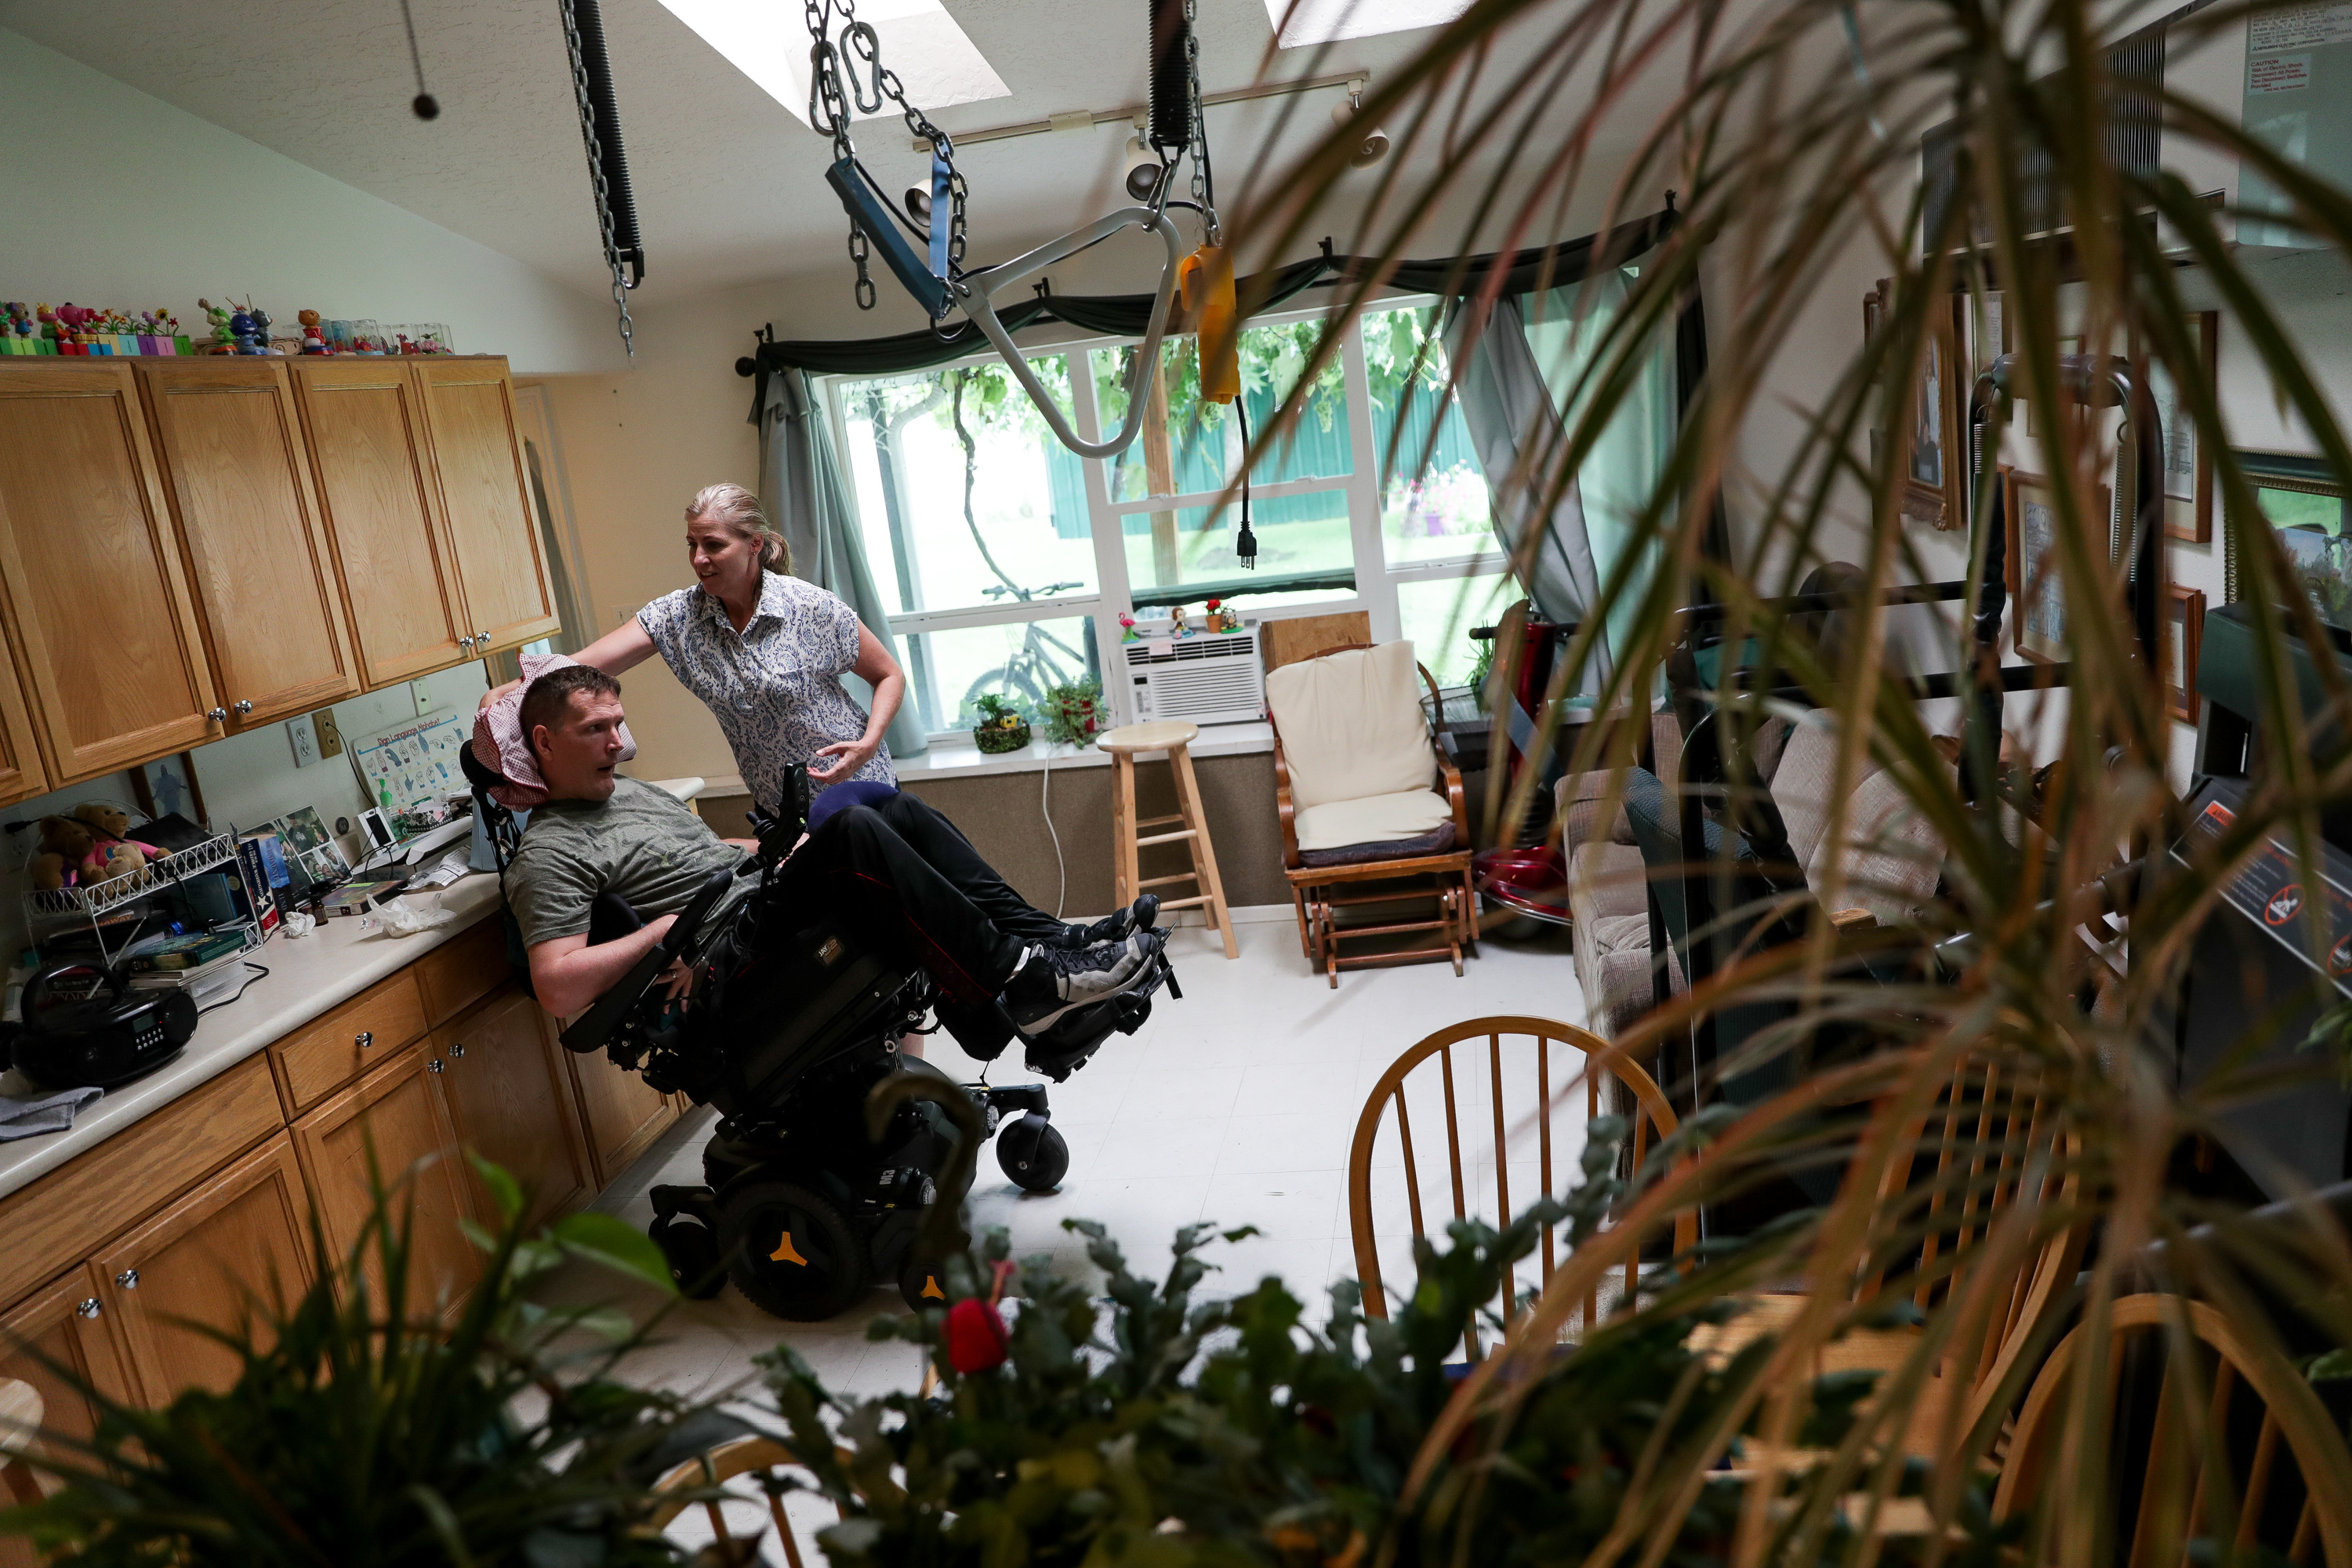 Wendy Tobey, who serves as a caregiver for Orin Voorheis, places a pillow behind his head at home in Pleasant Grove, Utah, on Tuesday, July 10, 2018.